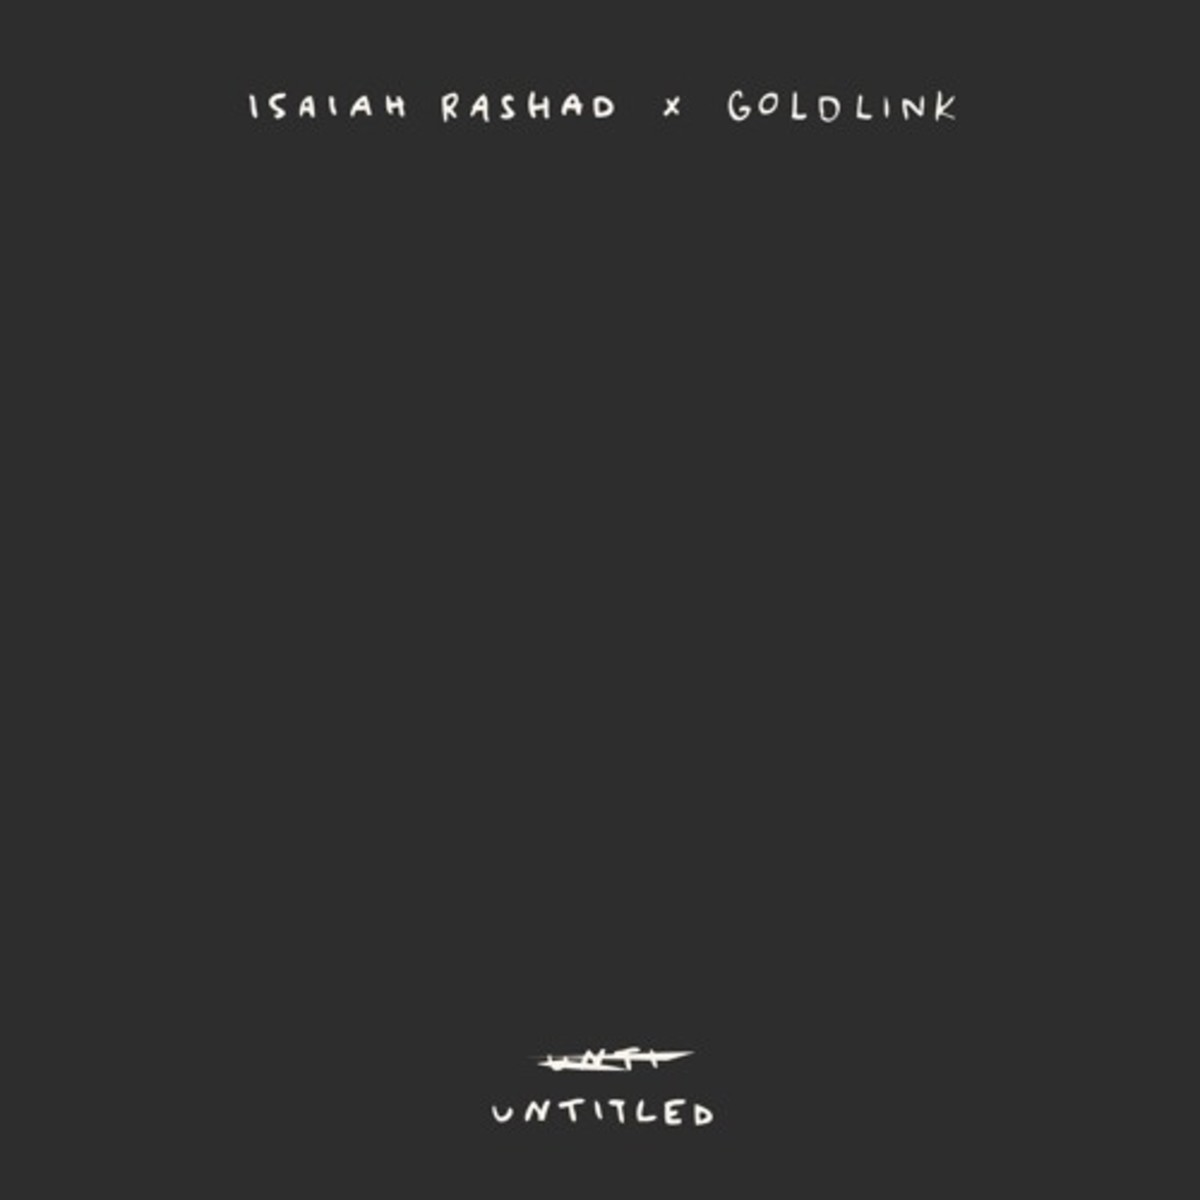 isaiah-rashad-goldlink-untitled.jpg